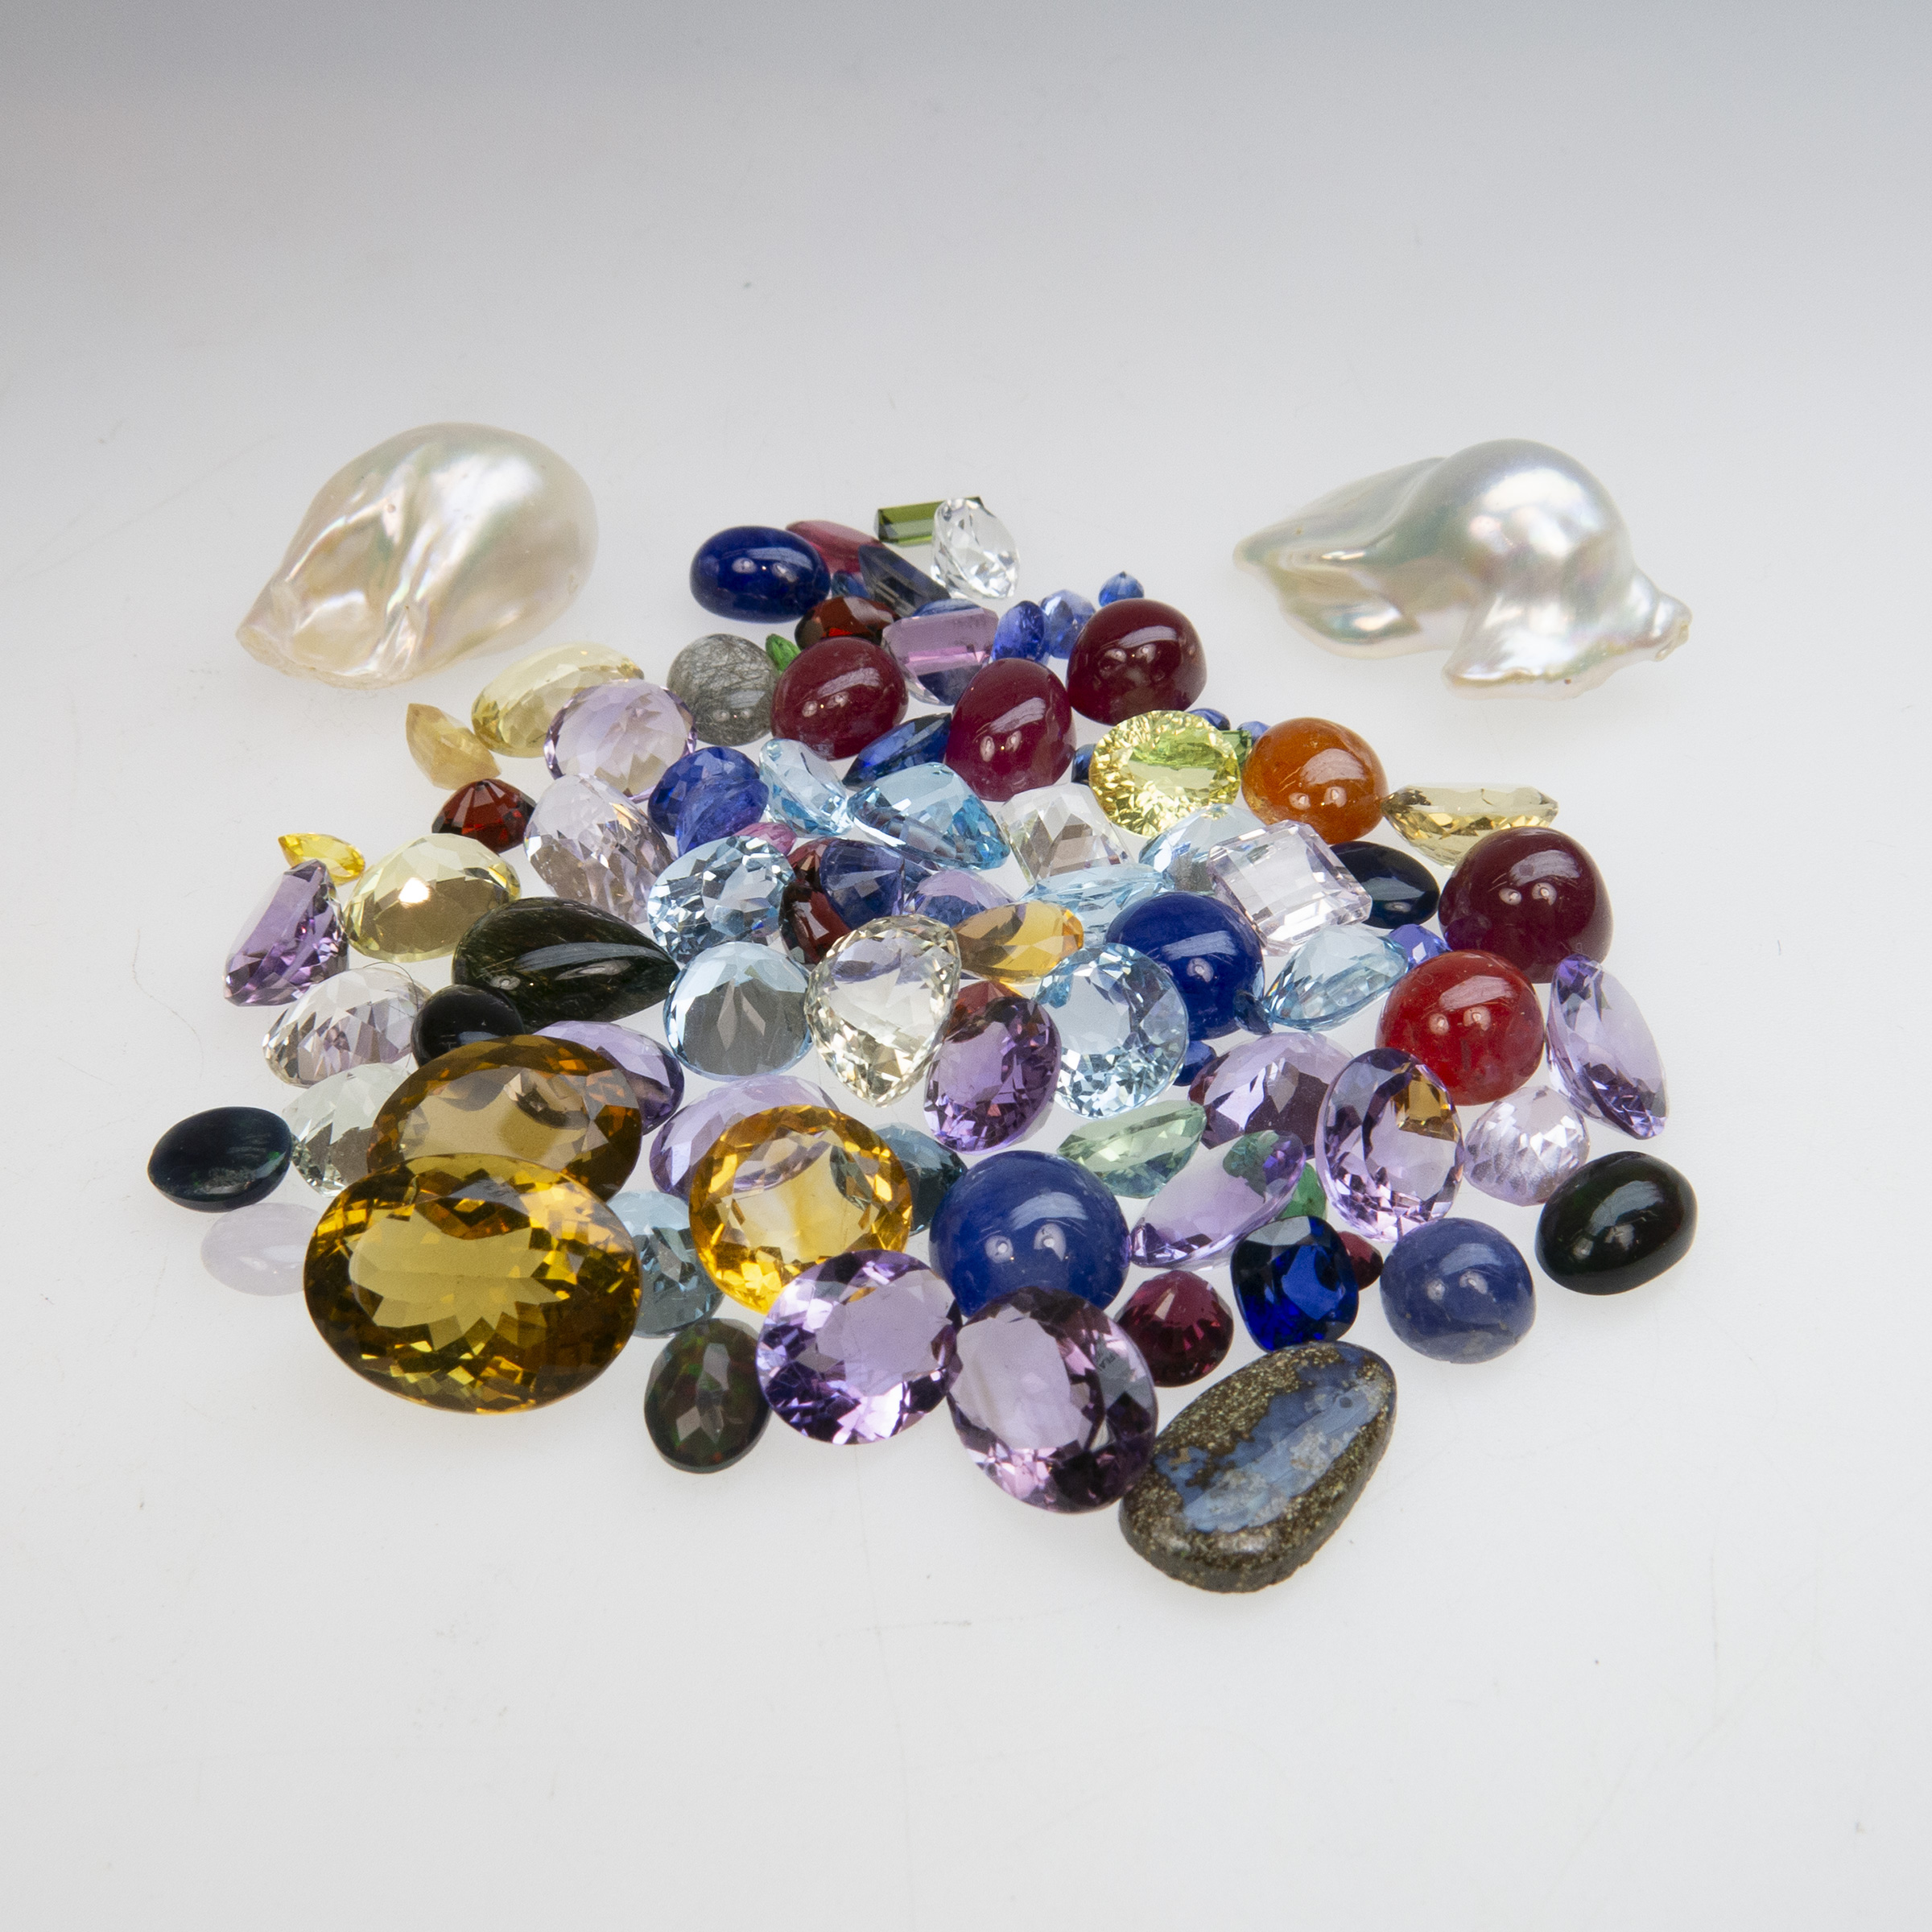 Two Large Baroque Pearls And A Quantity Of Various Unmounted Gemstones